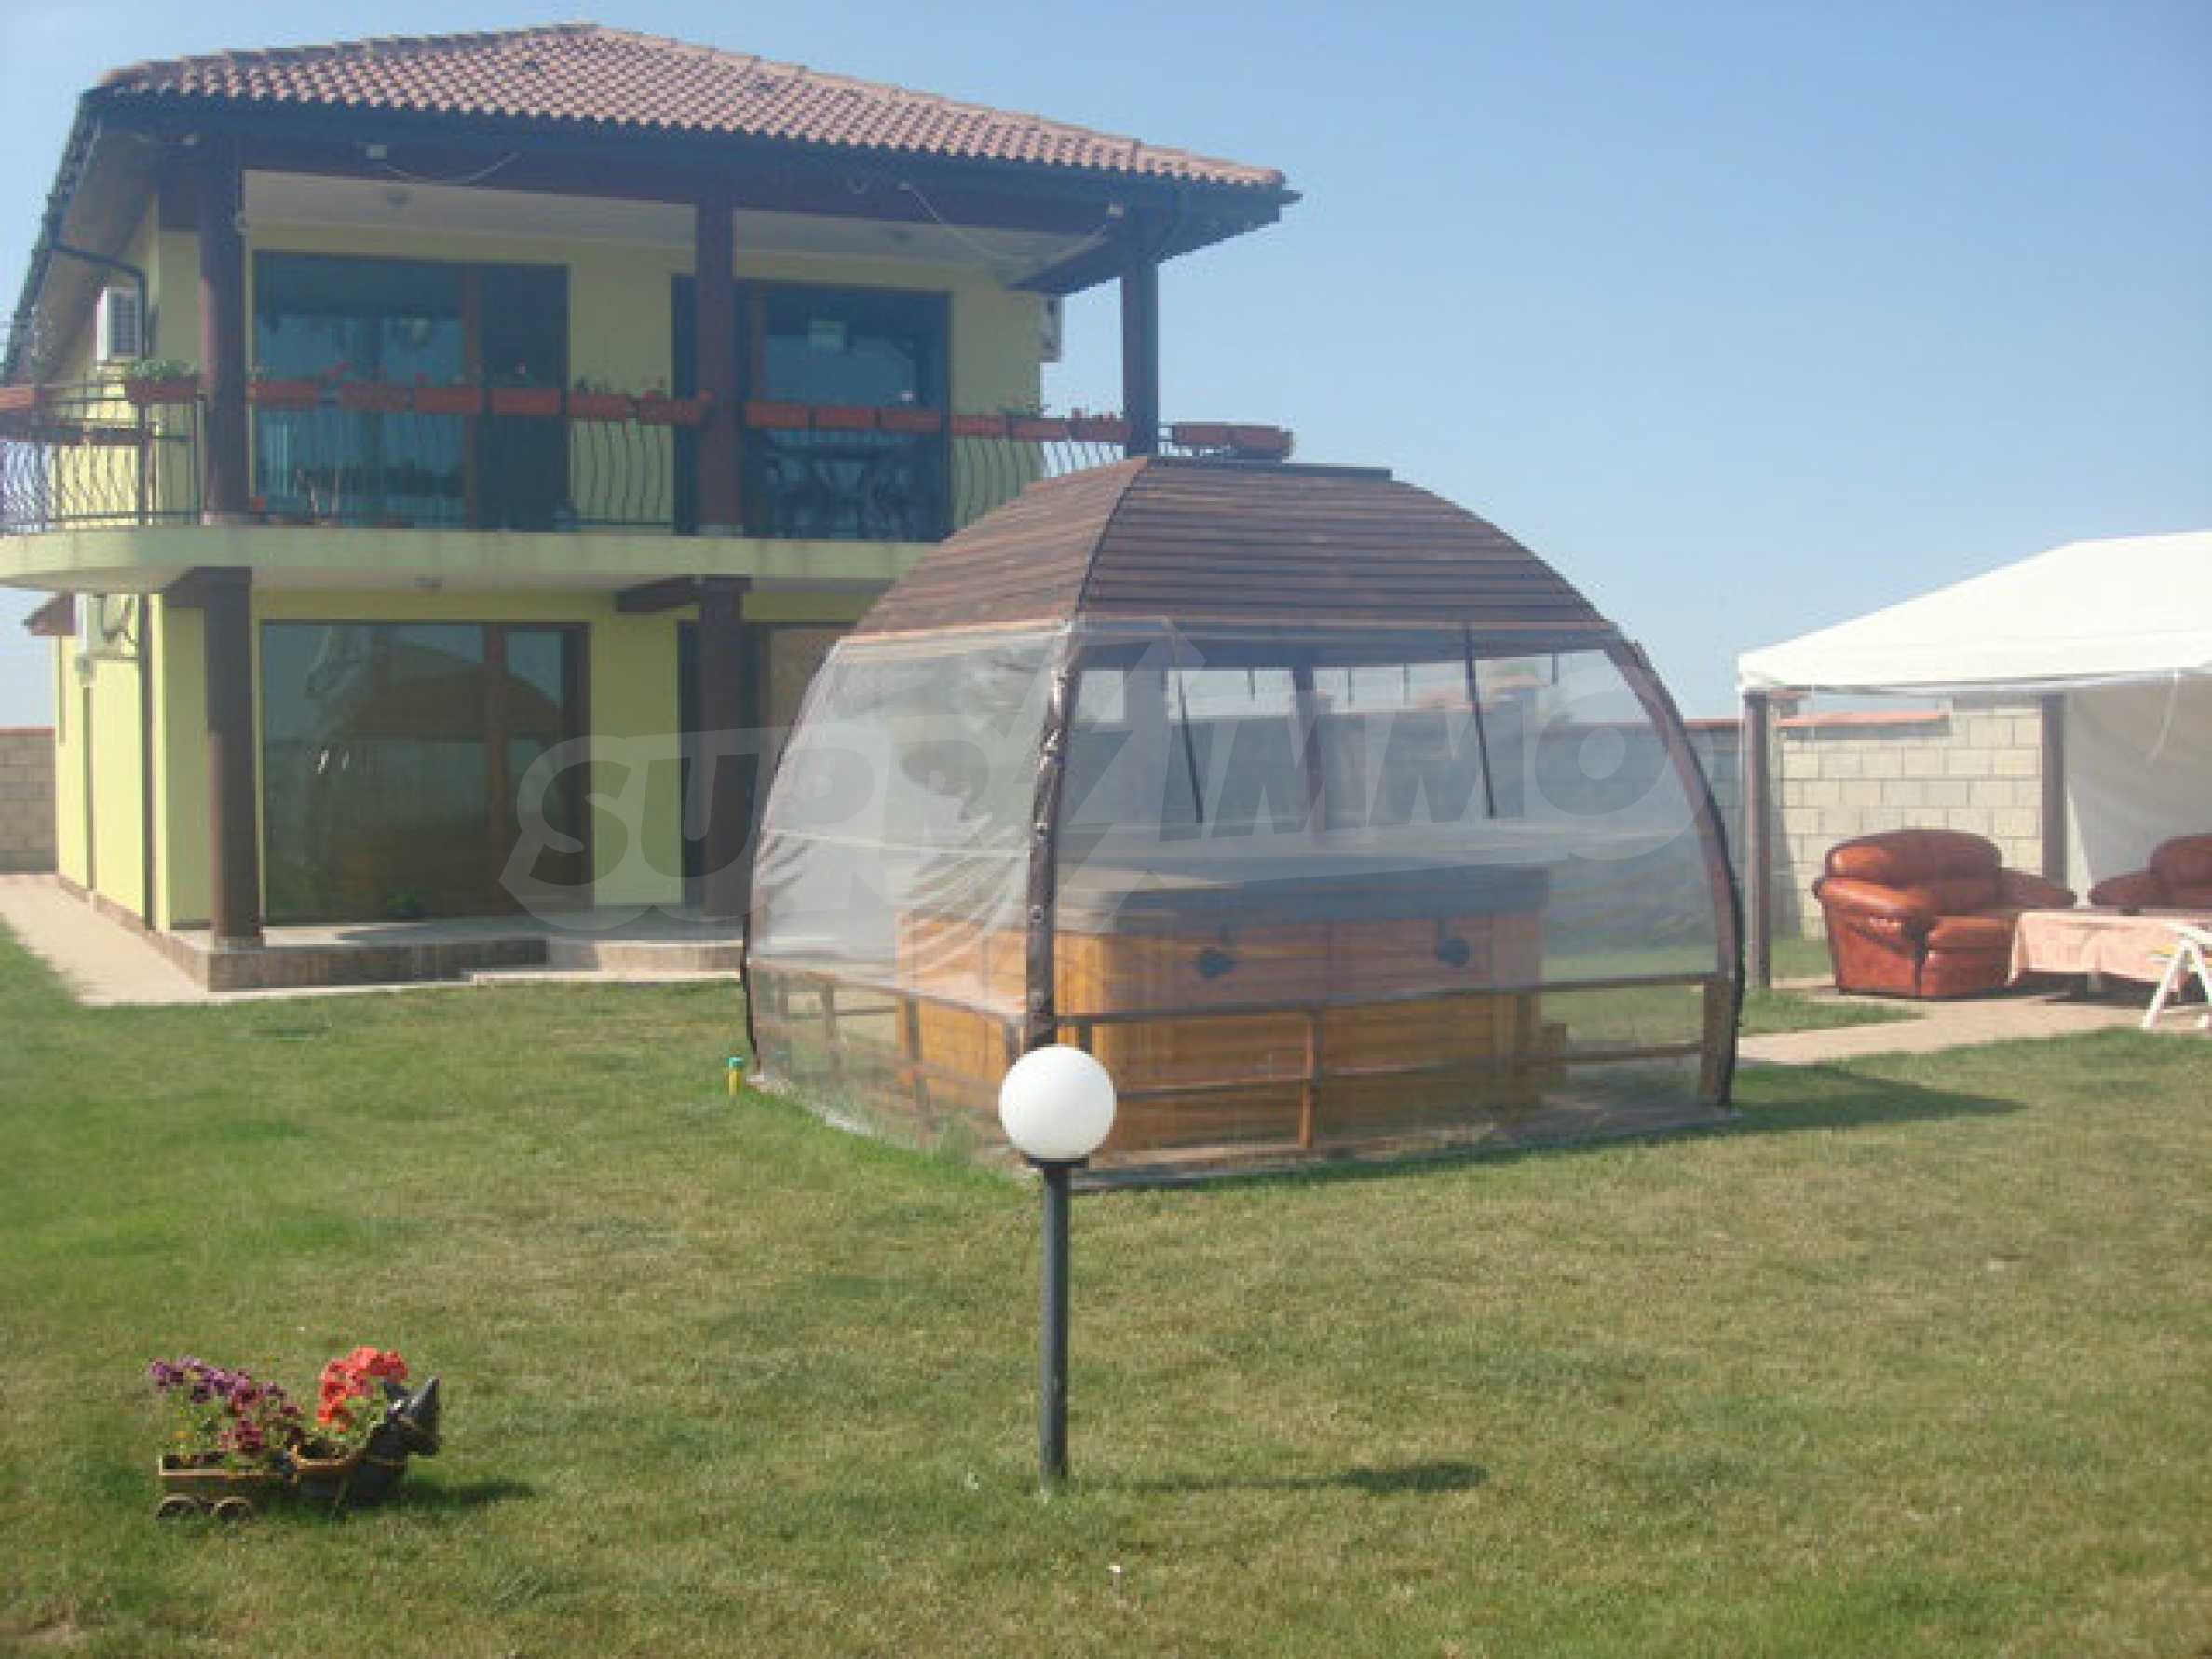 House for sale in Topola village